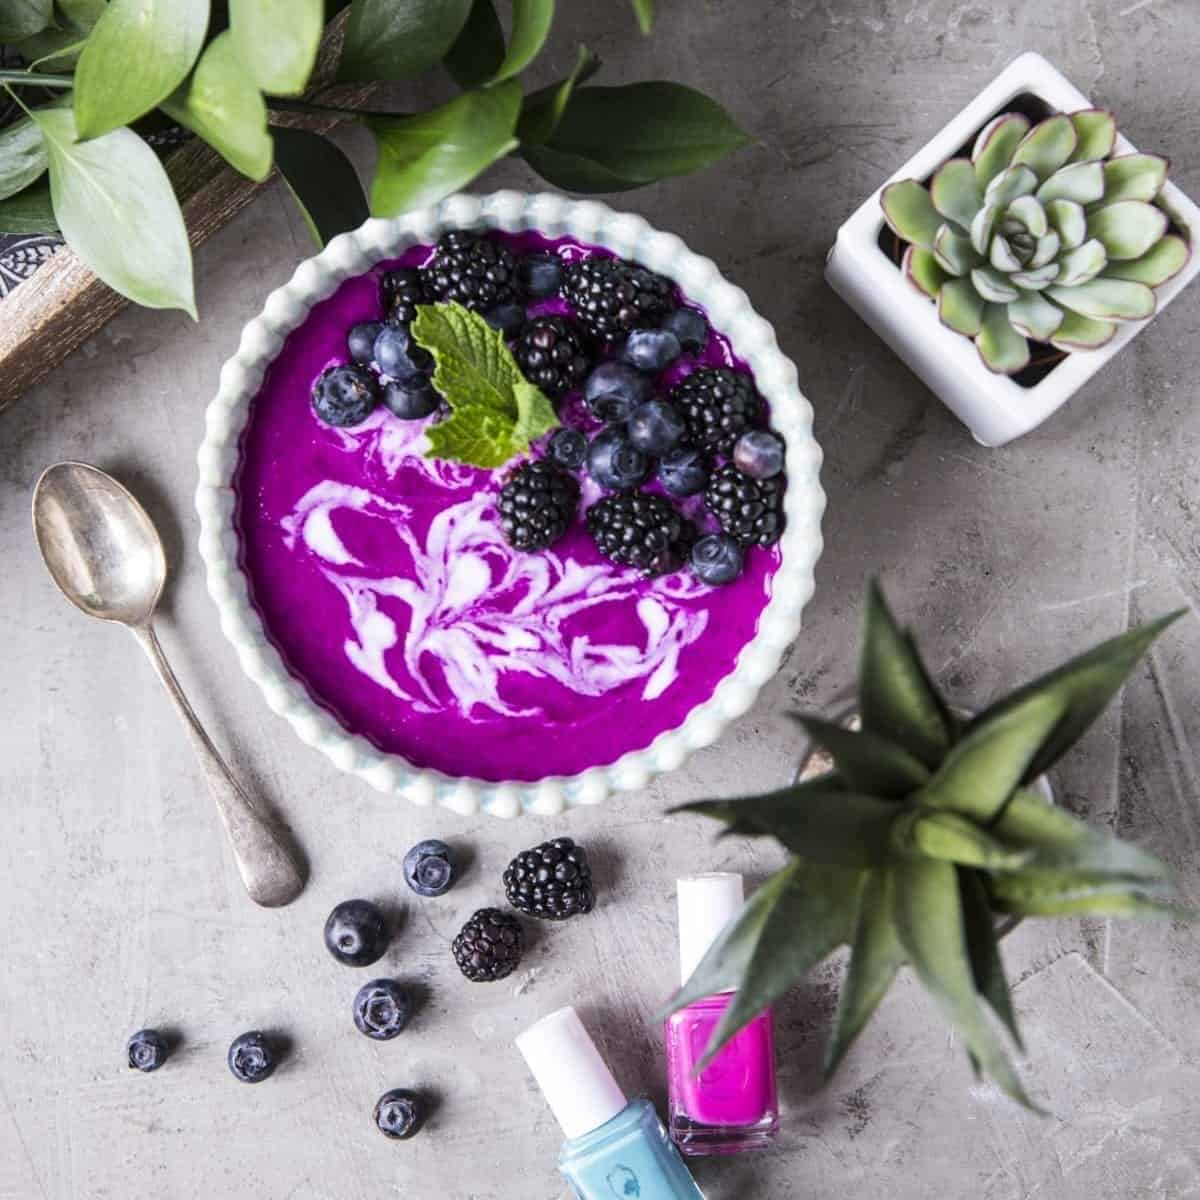 Dragon Fruit Smoothie Bowl with blueberries and blackberries